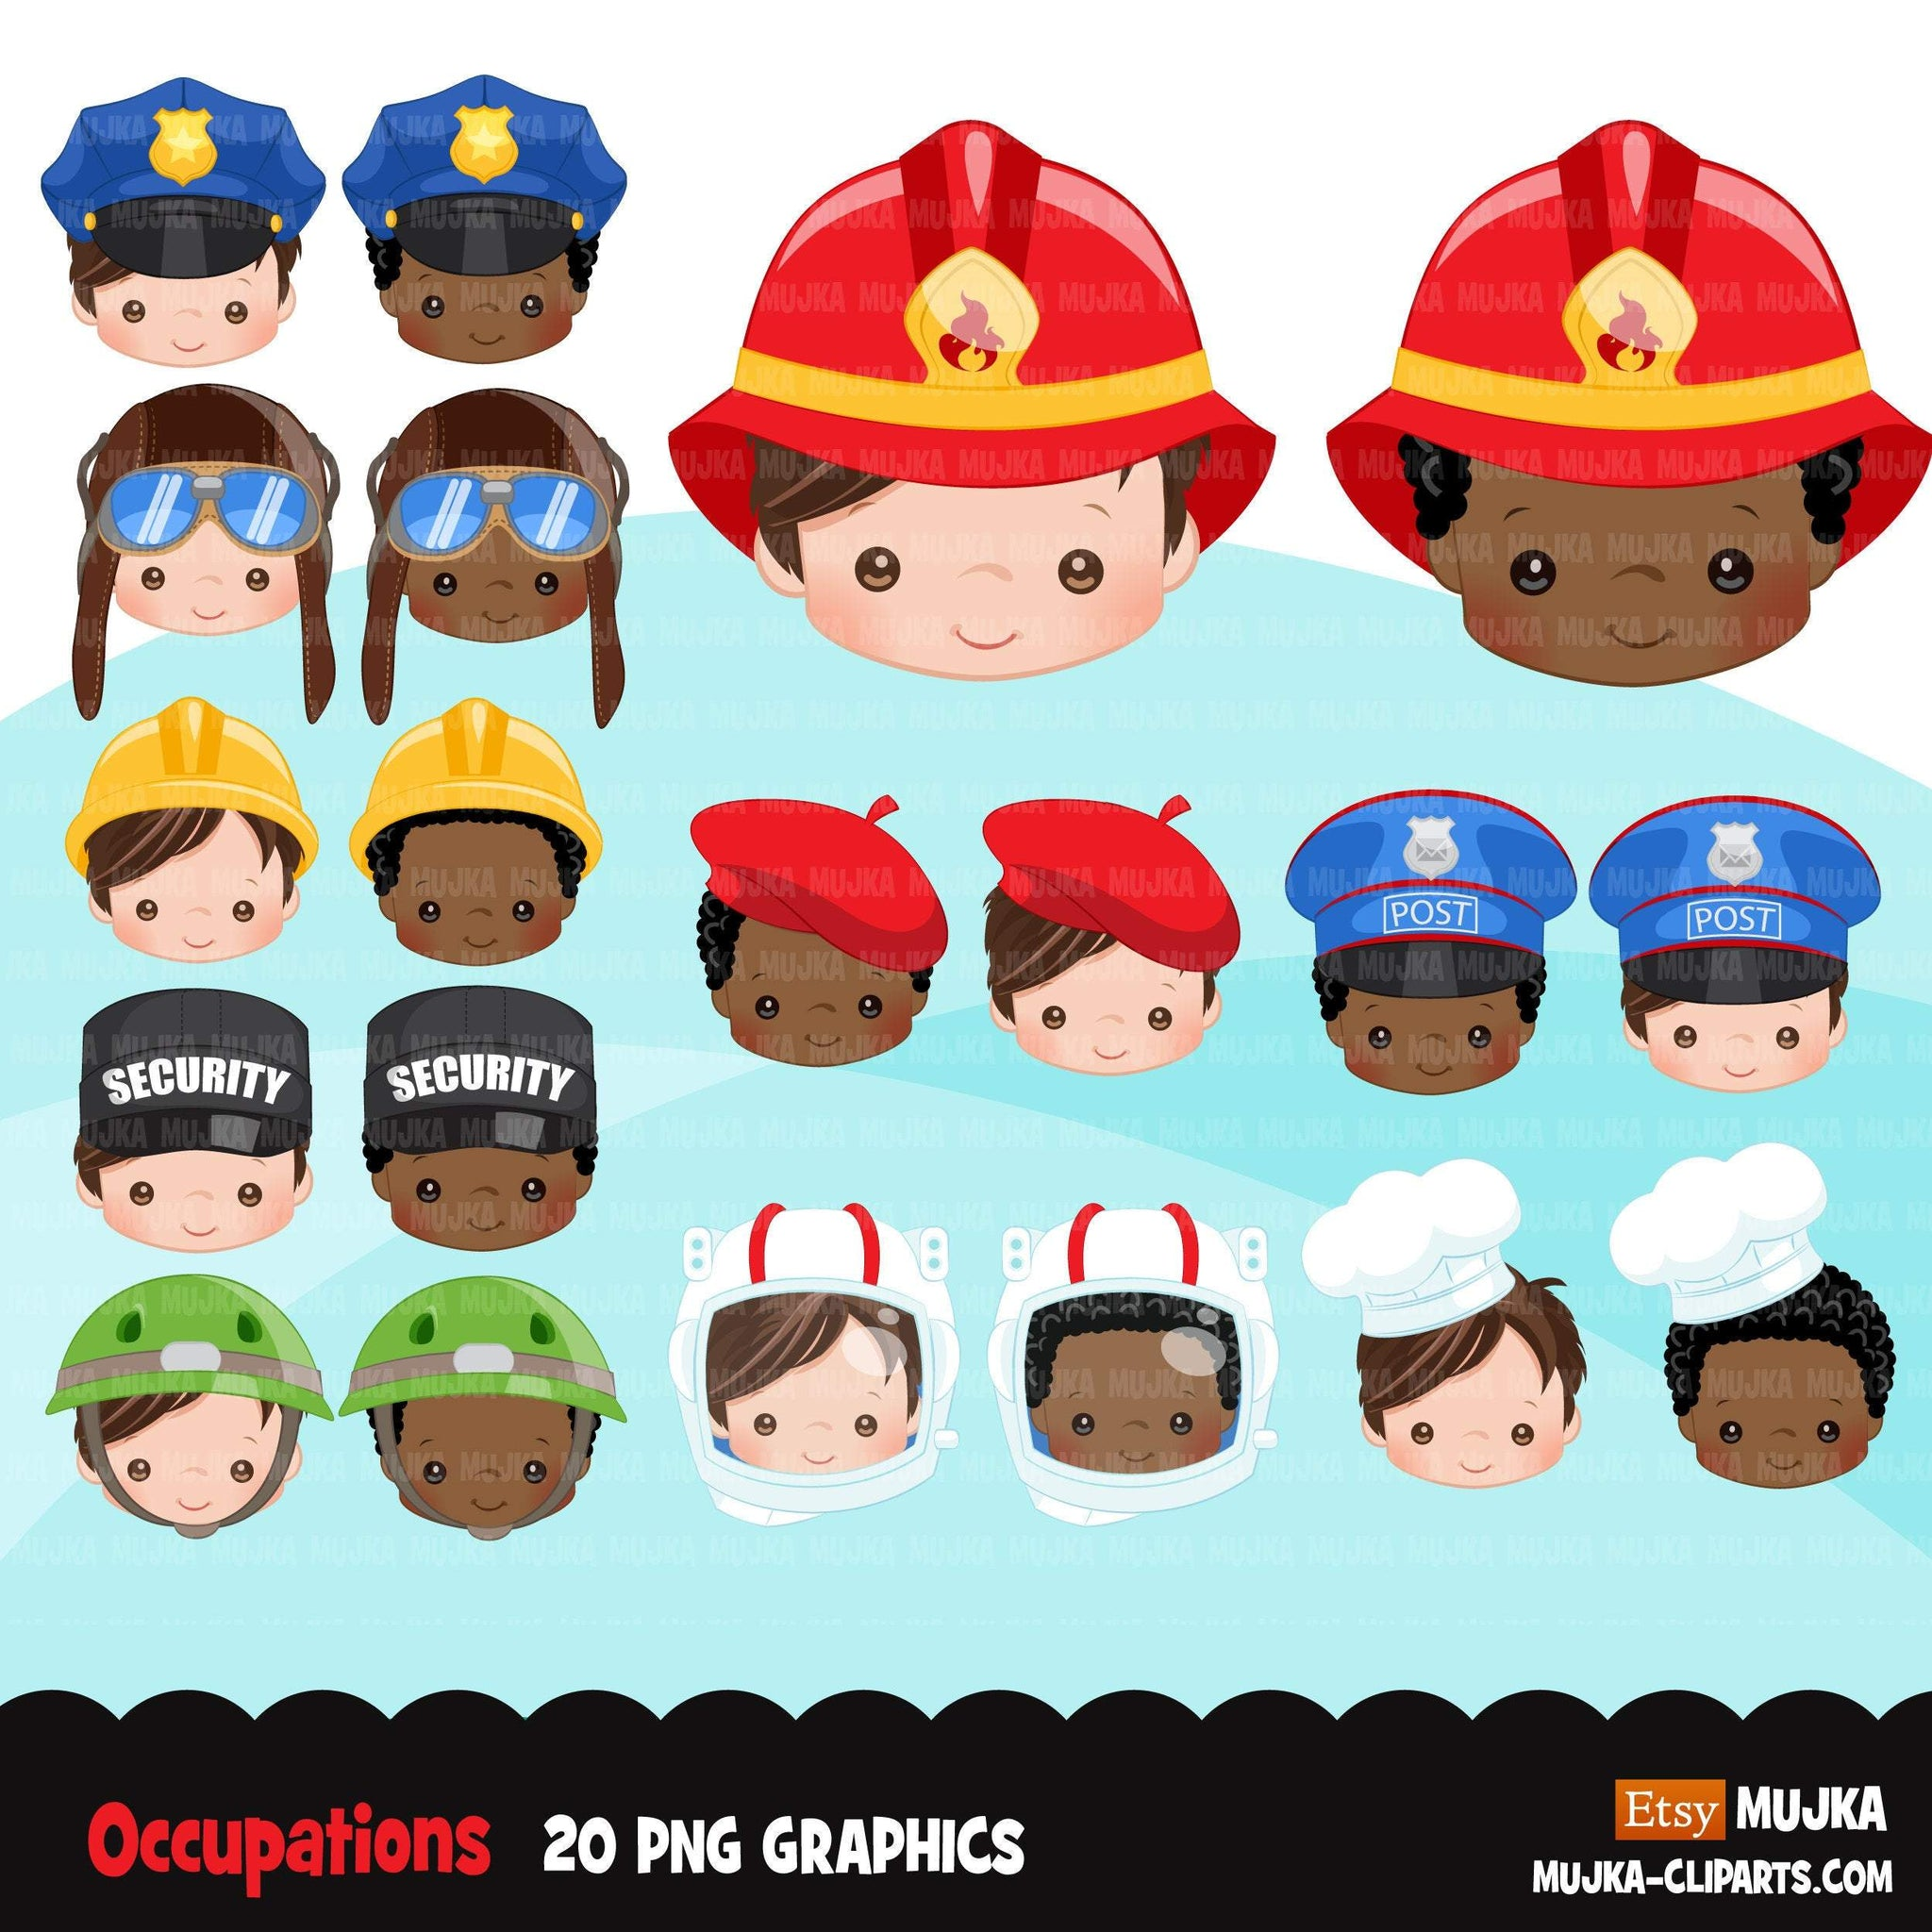 Occupations Clipart, profession graphics, firefighter, cop, chef, pilot, mailman, soldier sublimation graphics, black boys PNG clip art